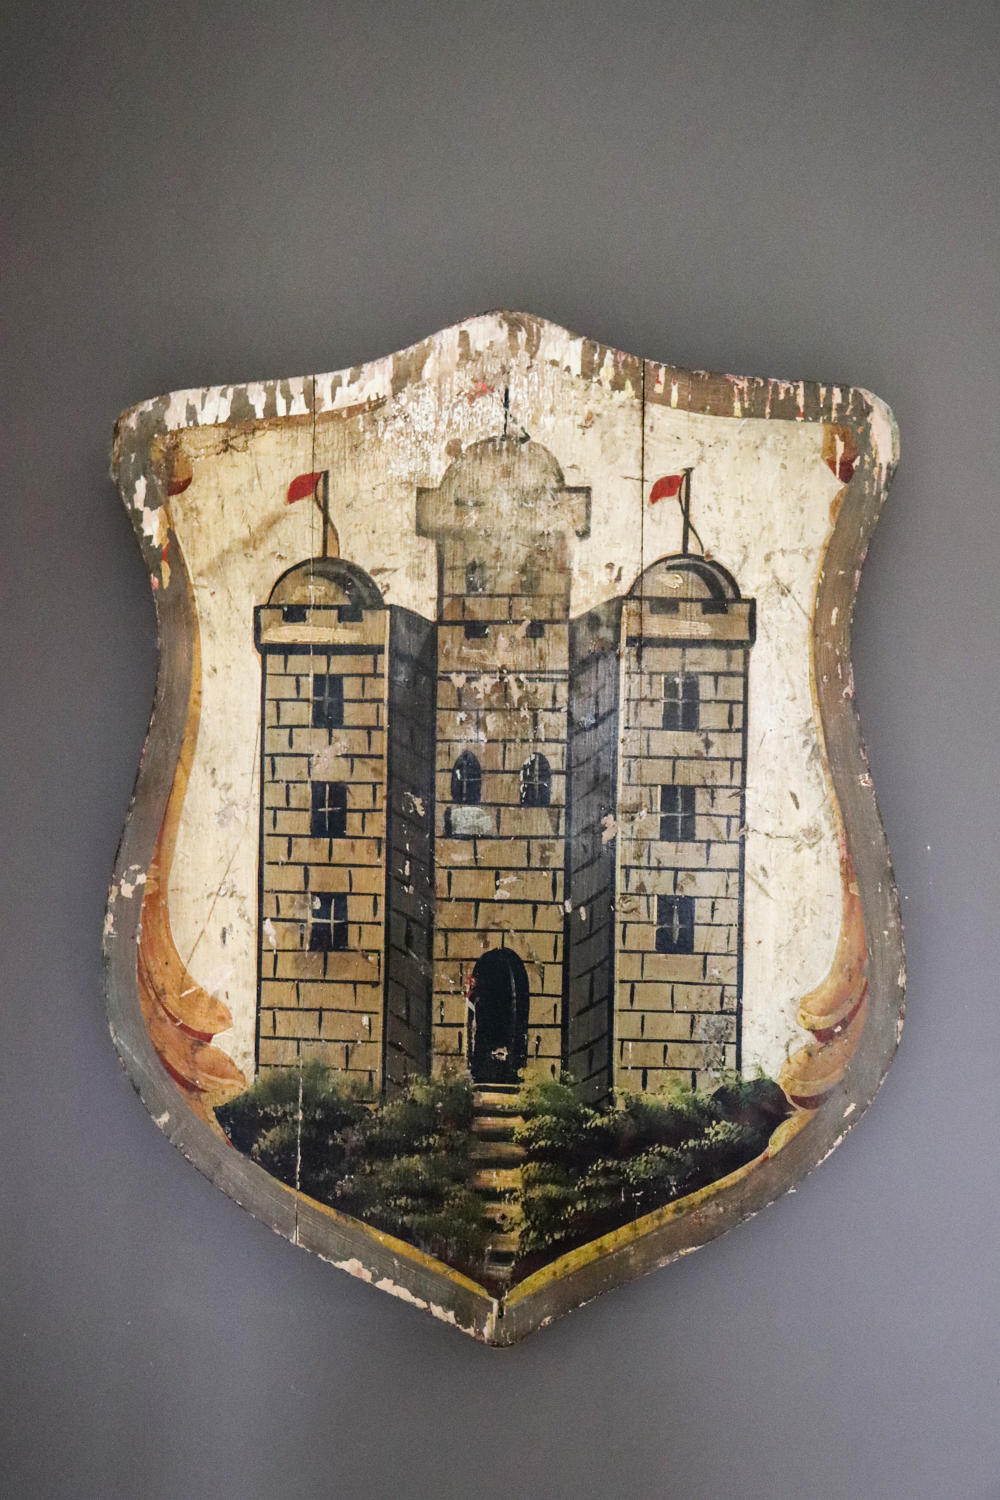 Wooden shield with painting of a castle